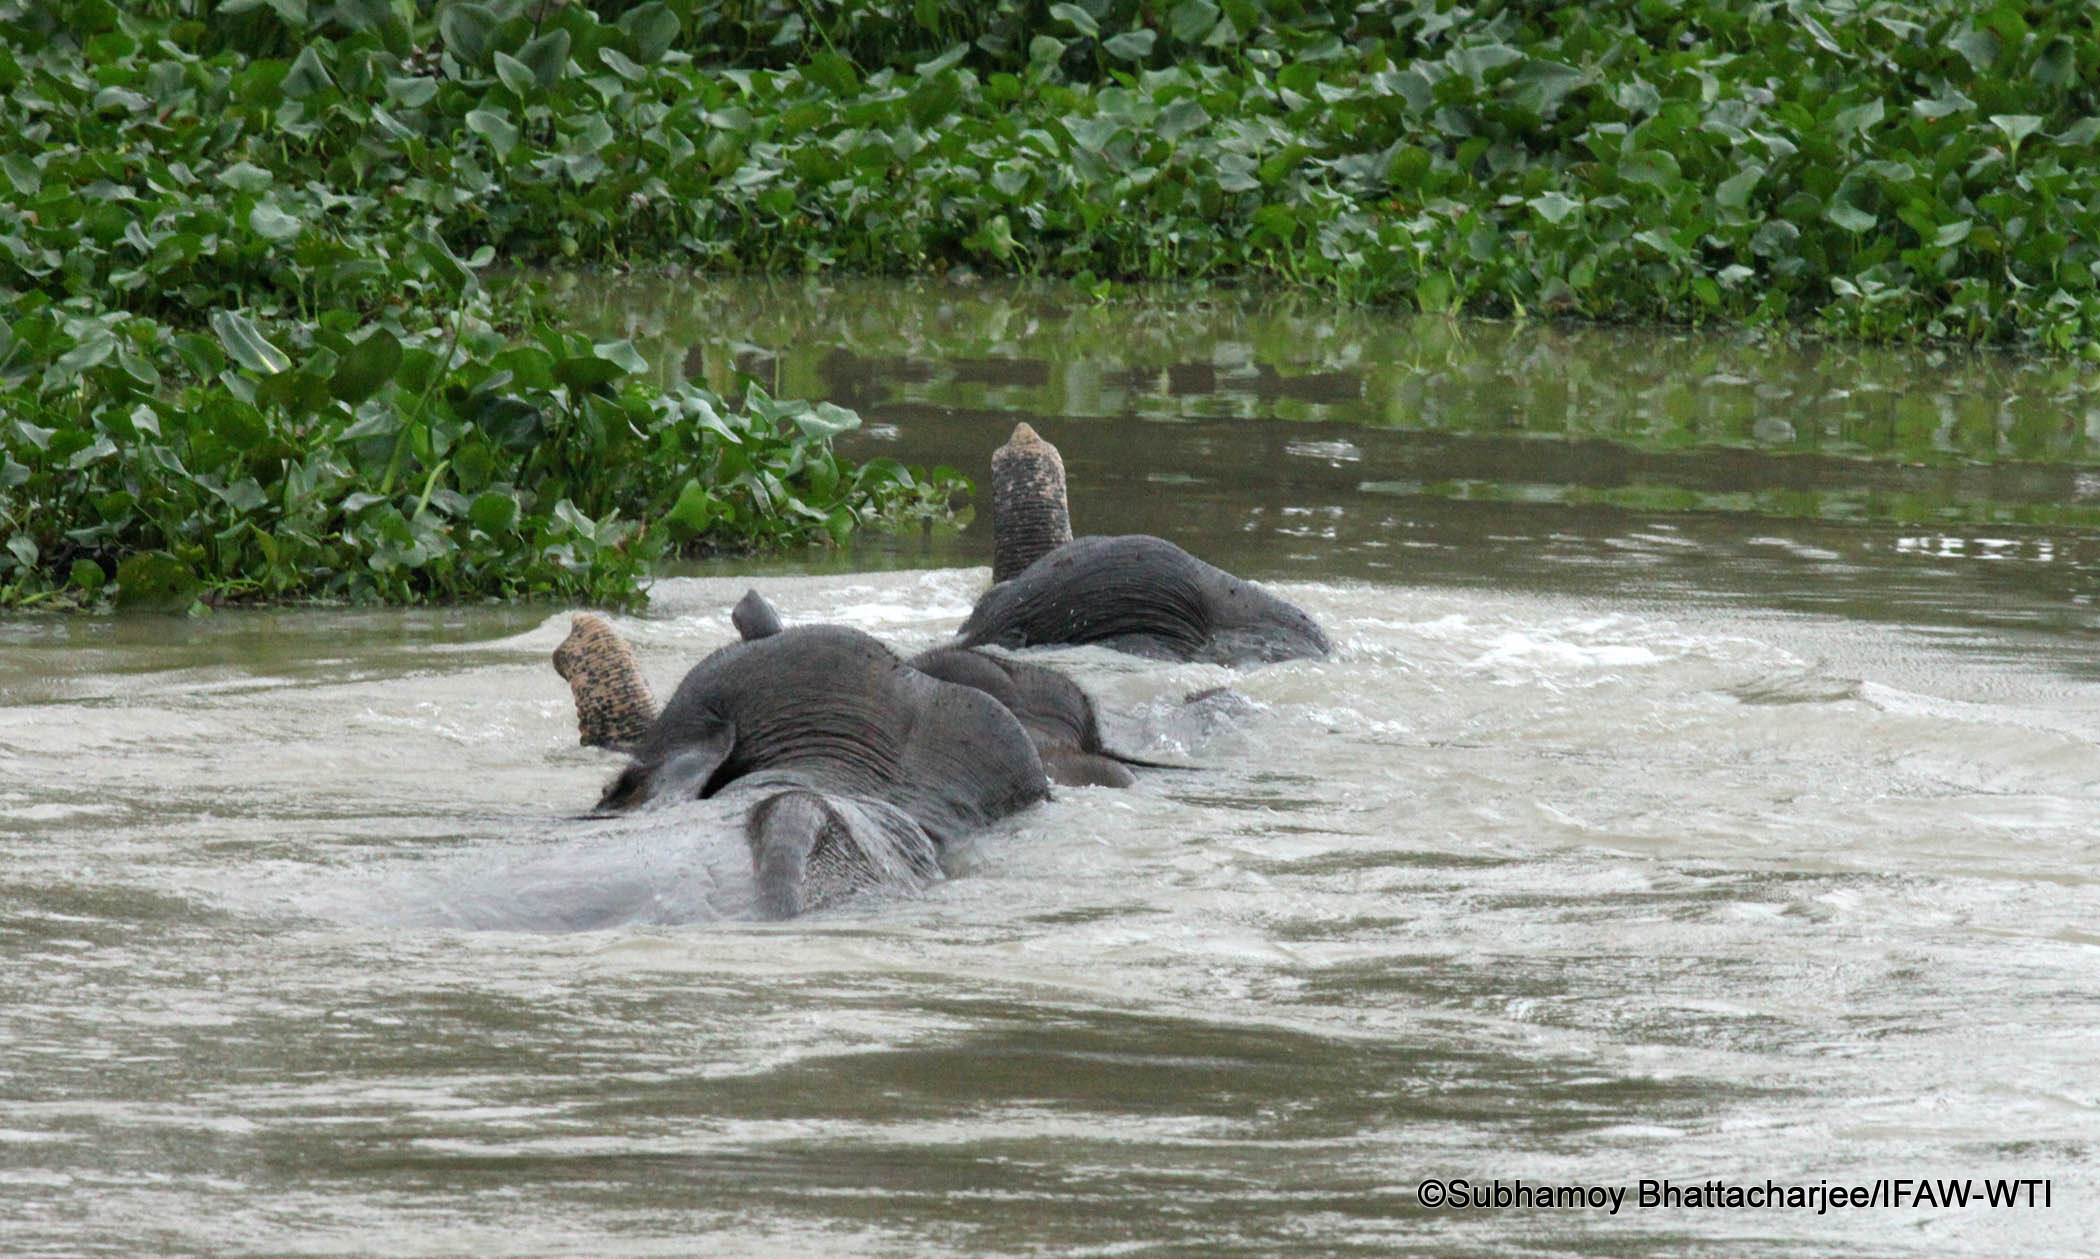 Elephants in flood water in Burhapahar Forest Beat area in on going flood phase in Kaziranga National Park. Photo credit: Subhamoy Bhattacharjee/IFAW-WTI.